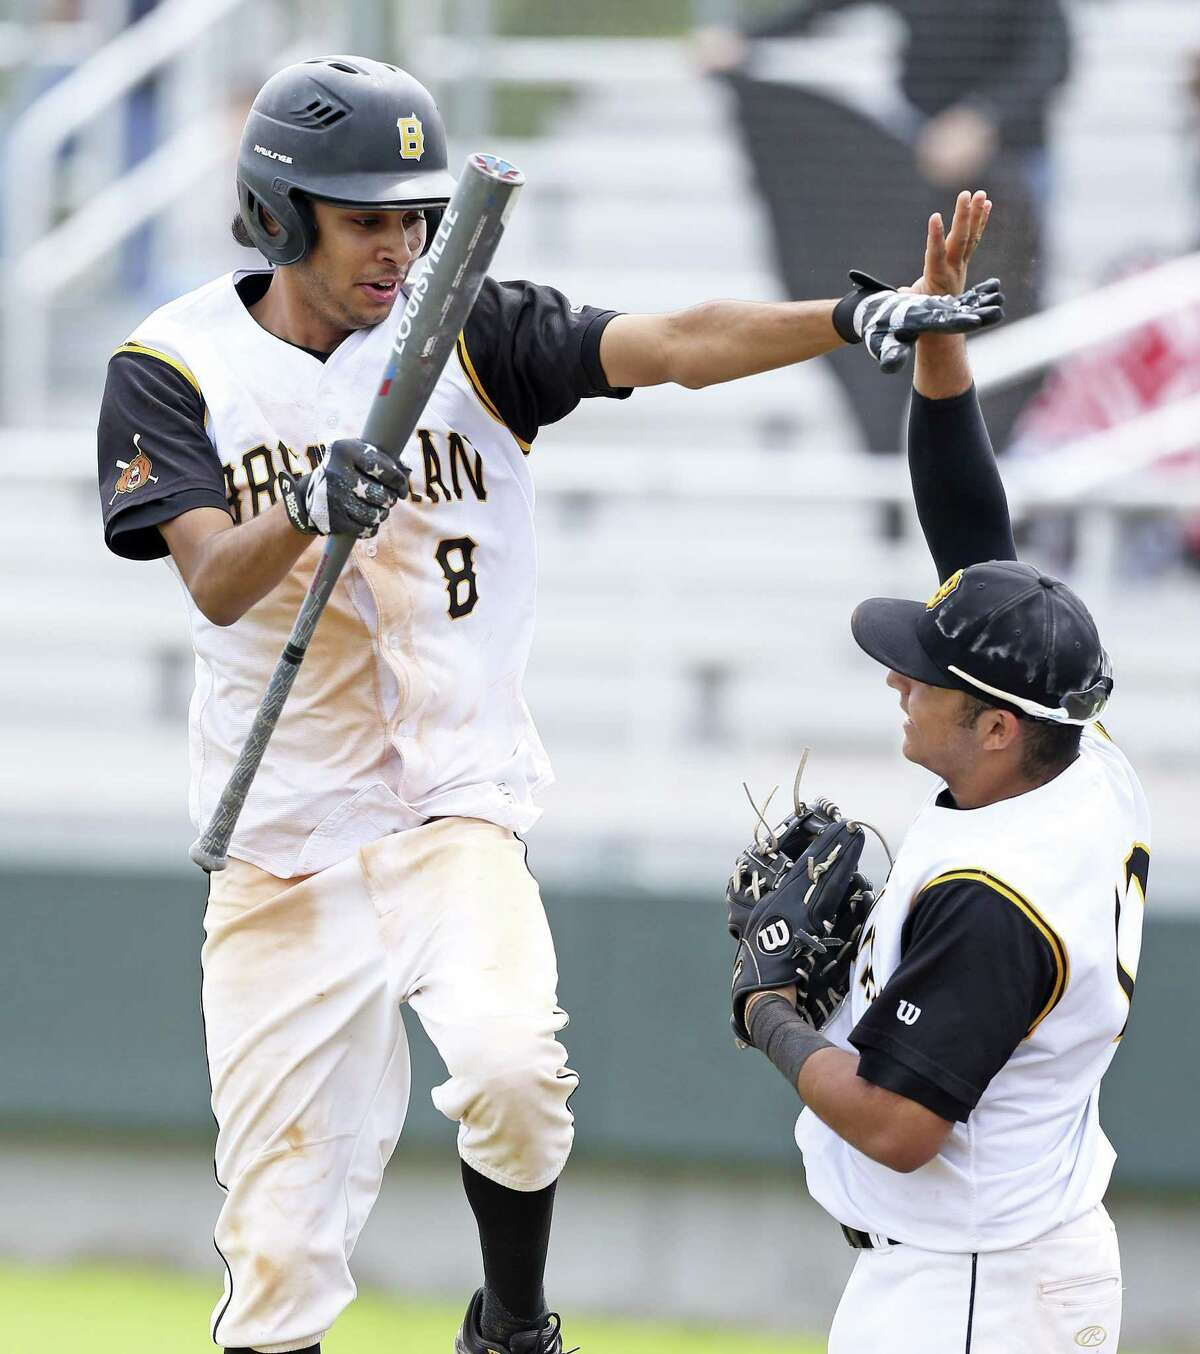 Esteban Gonzales leaps for a high five after scoring in the game ending sixth inning as Brennan beats Jay 10-0 in District 28-6A baseball at Northside Field 1 on March 30, 2019.